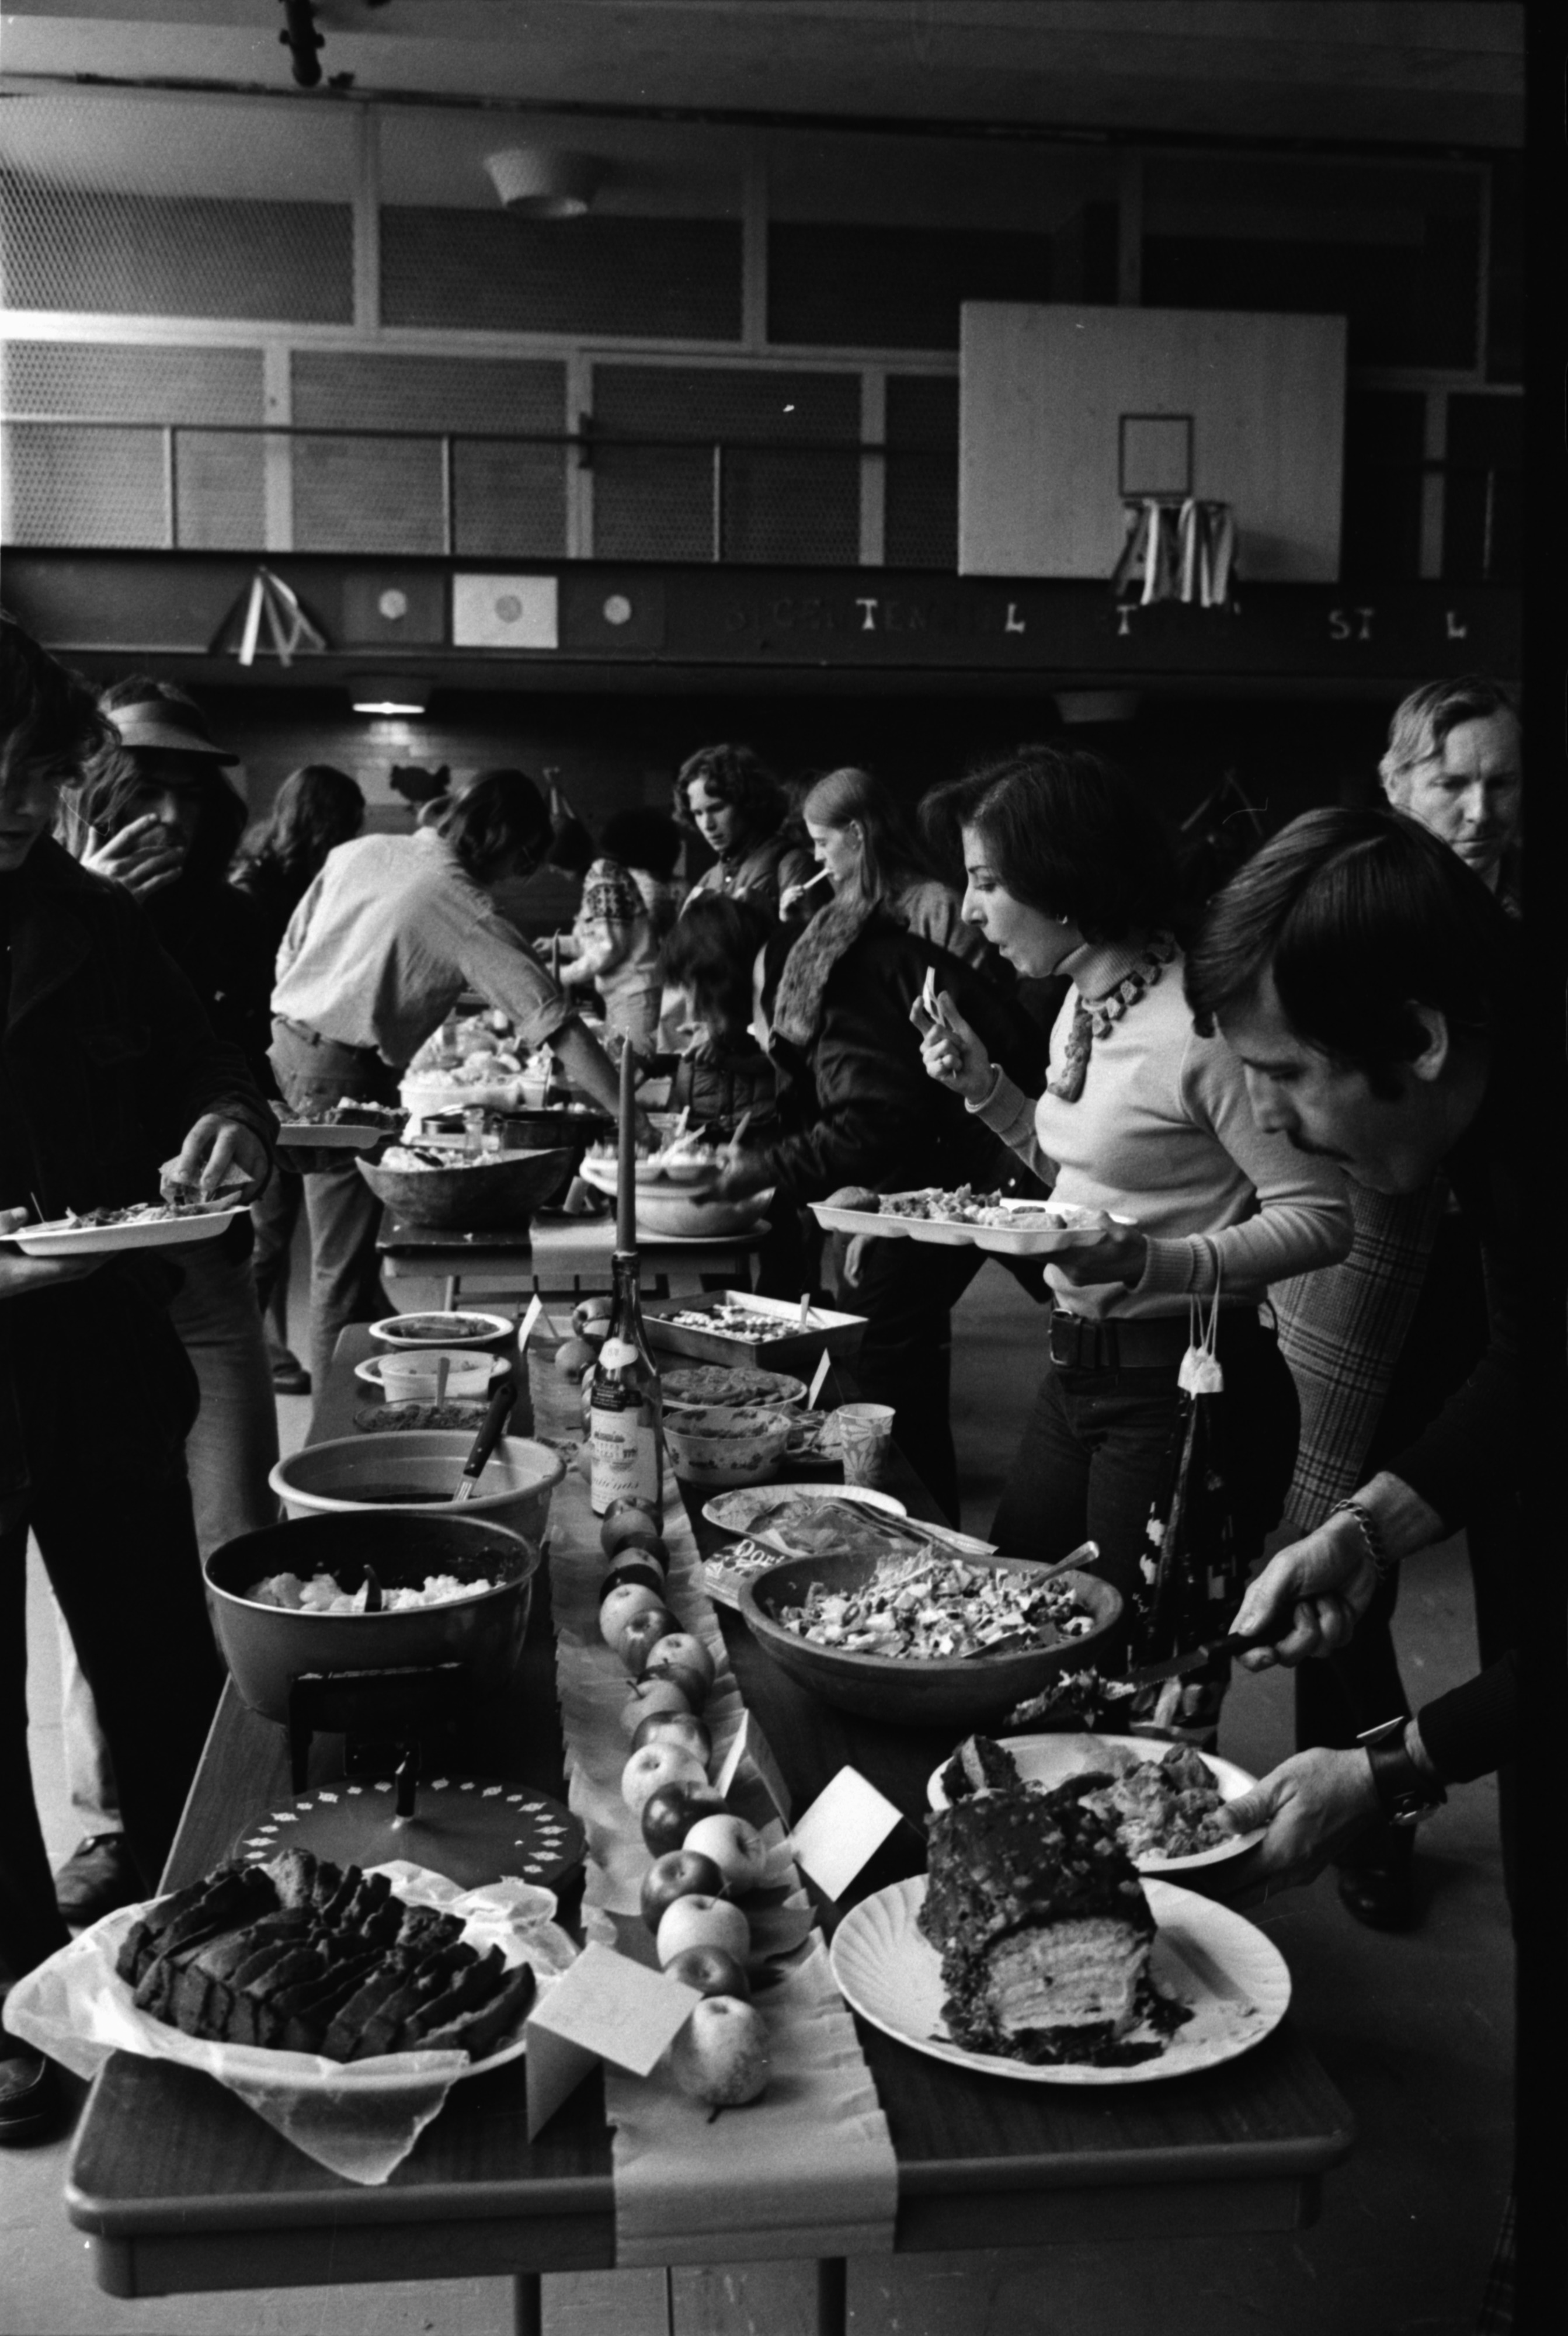 Bicentennial Thanksgiving Celebration at Community High School, November 1975 image